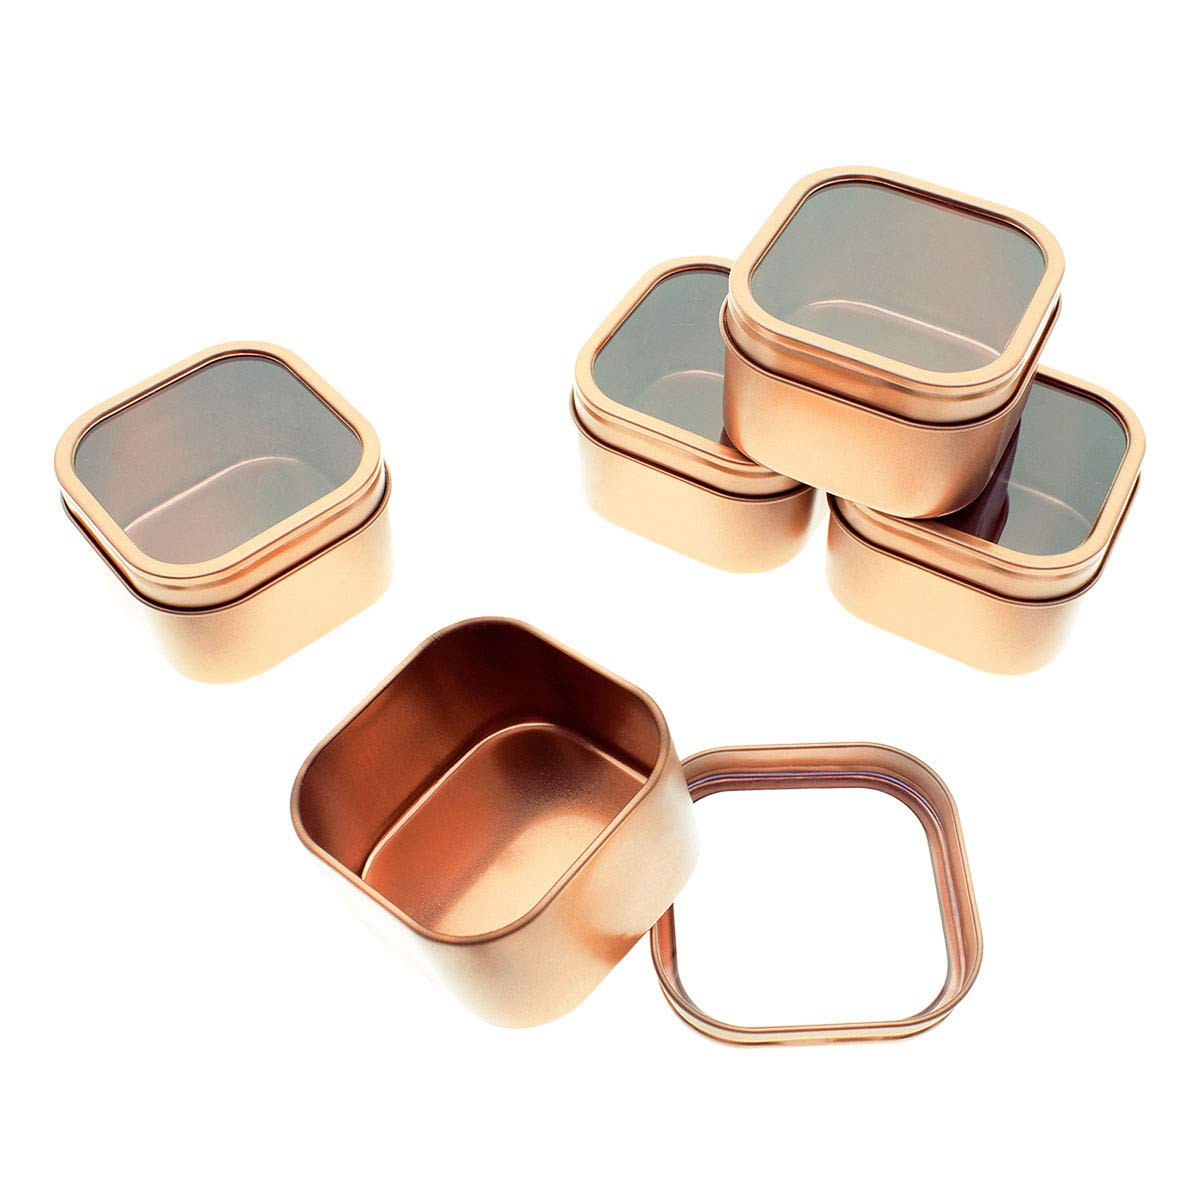 Mimi Pack 4 oz Empty Clear Top Square Cube Favor Tins for Crafts and Storage (24, Rose Gold)